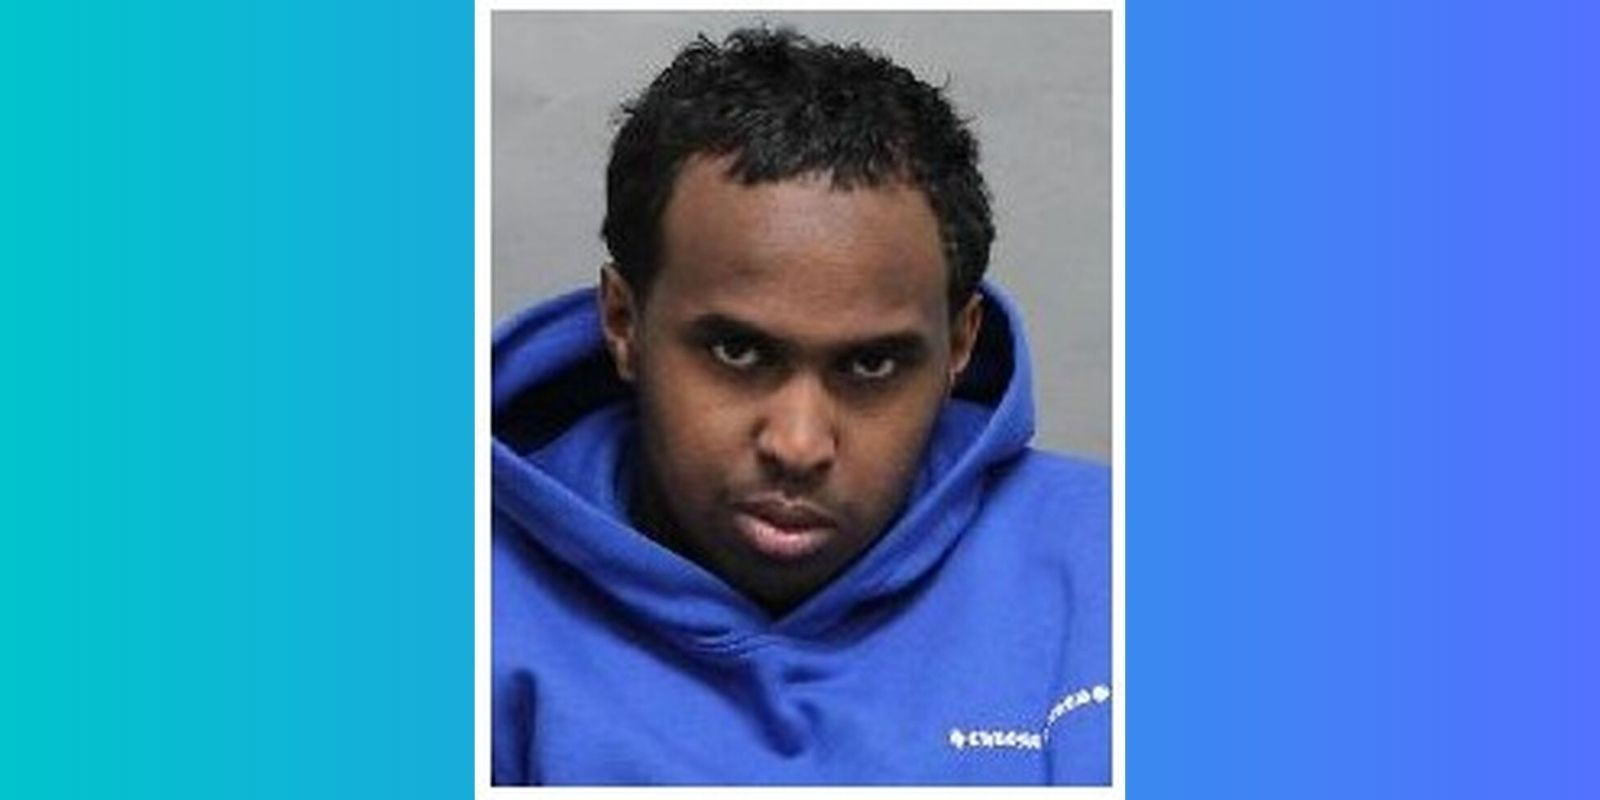 Police searching for Toronto rapper wanted for first-degree murder